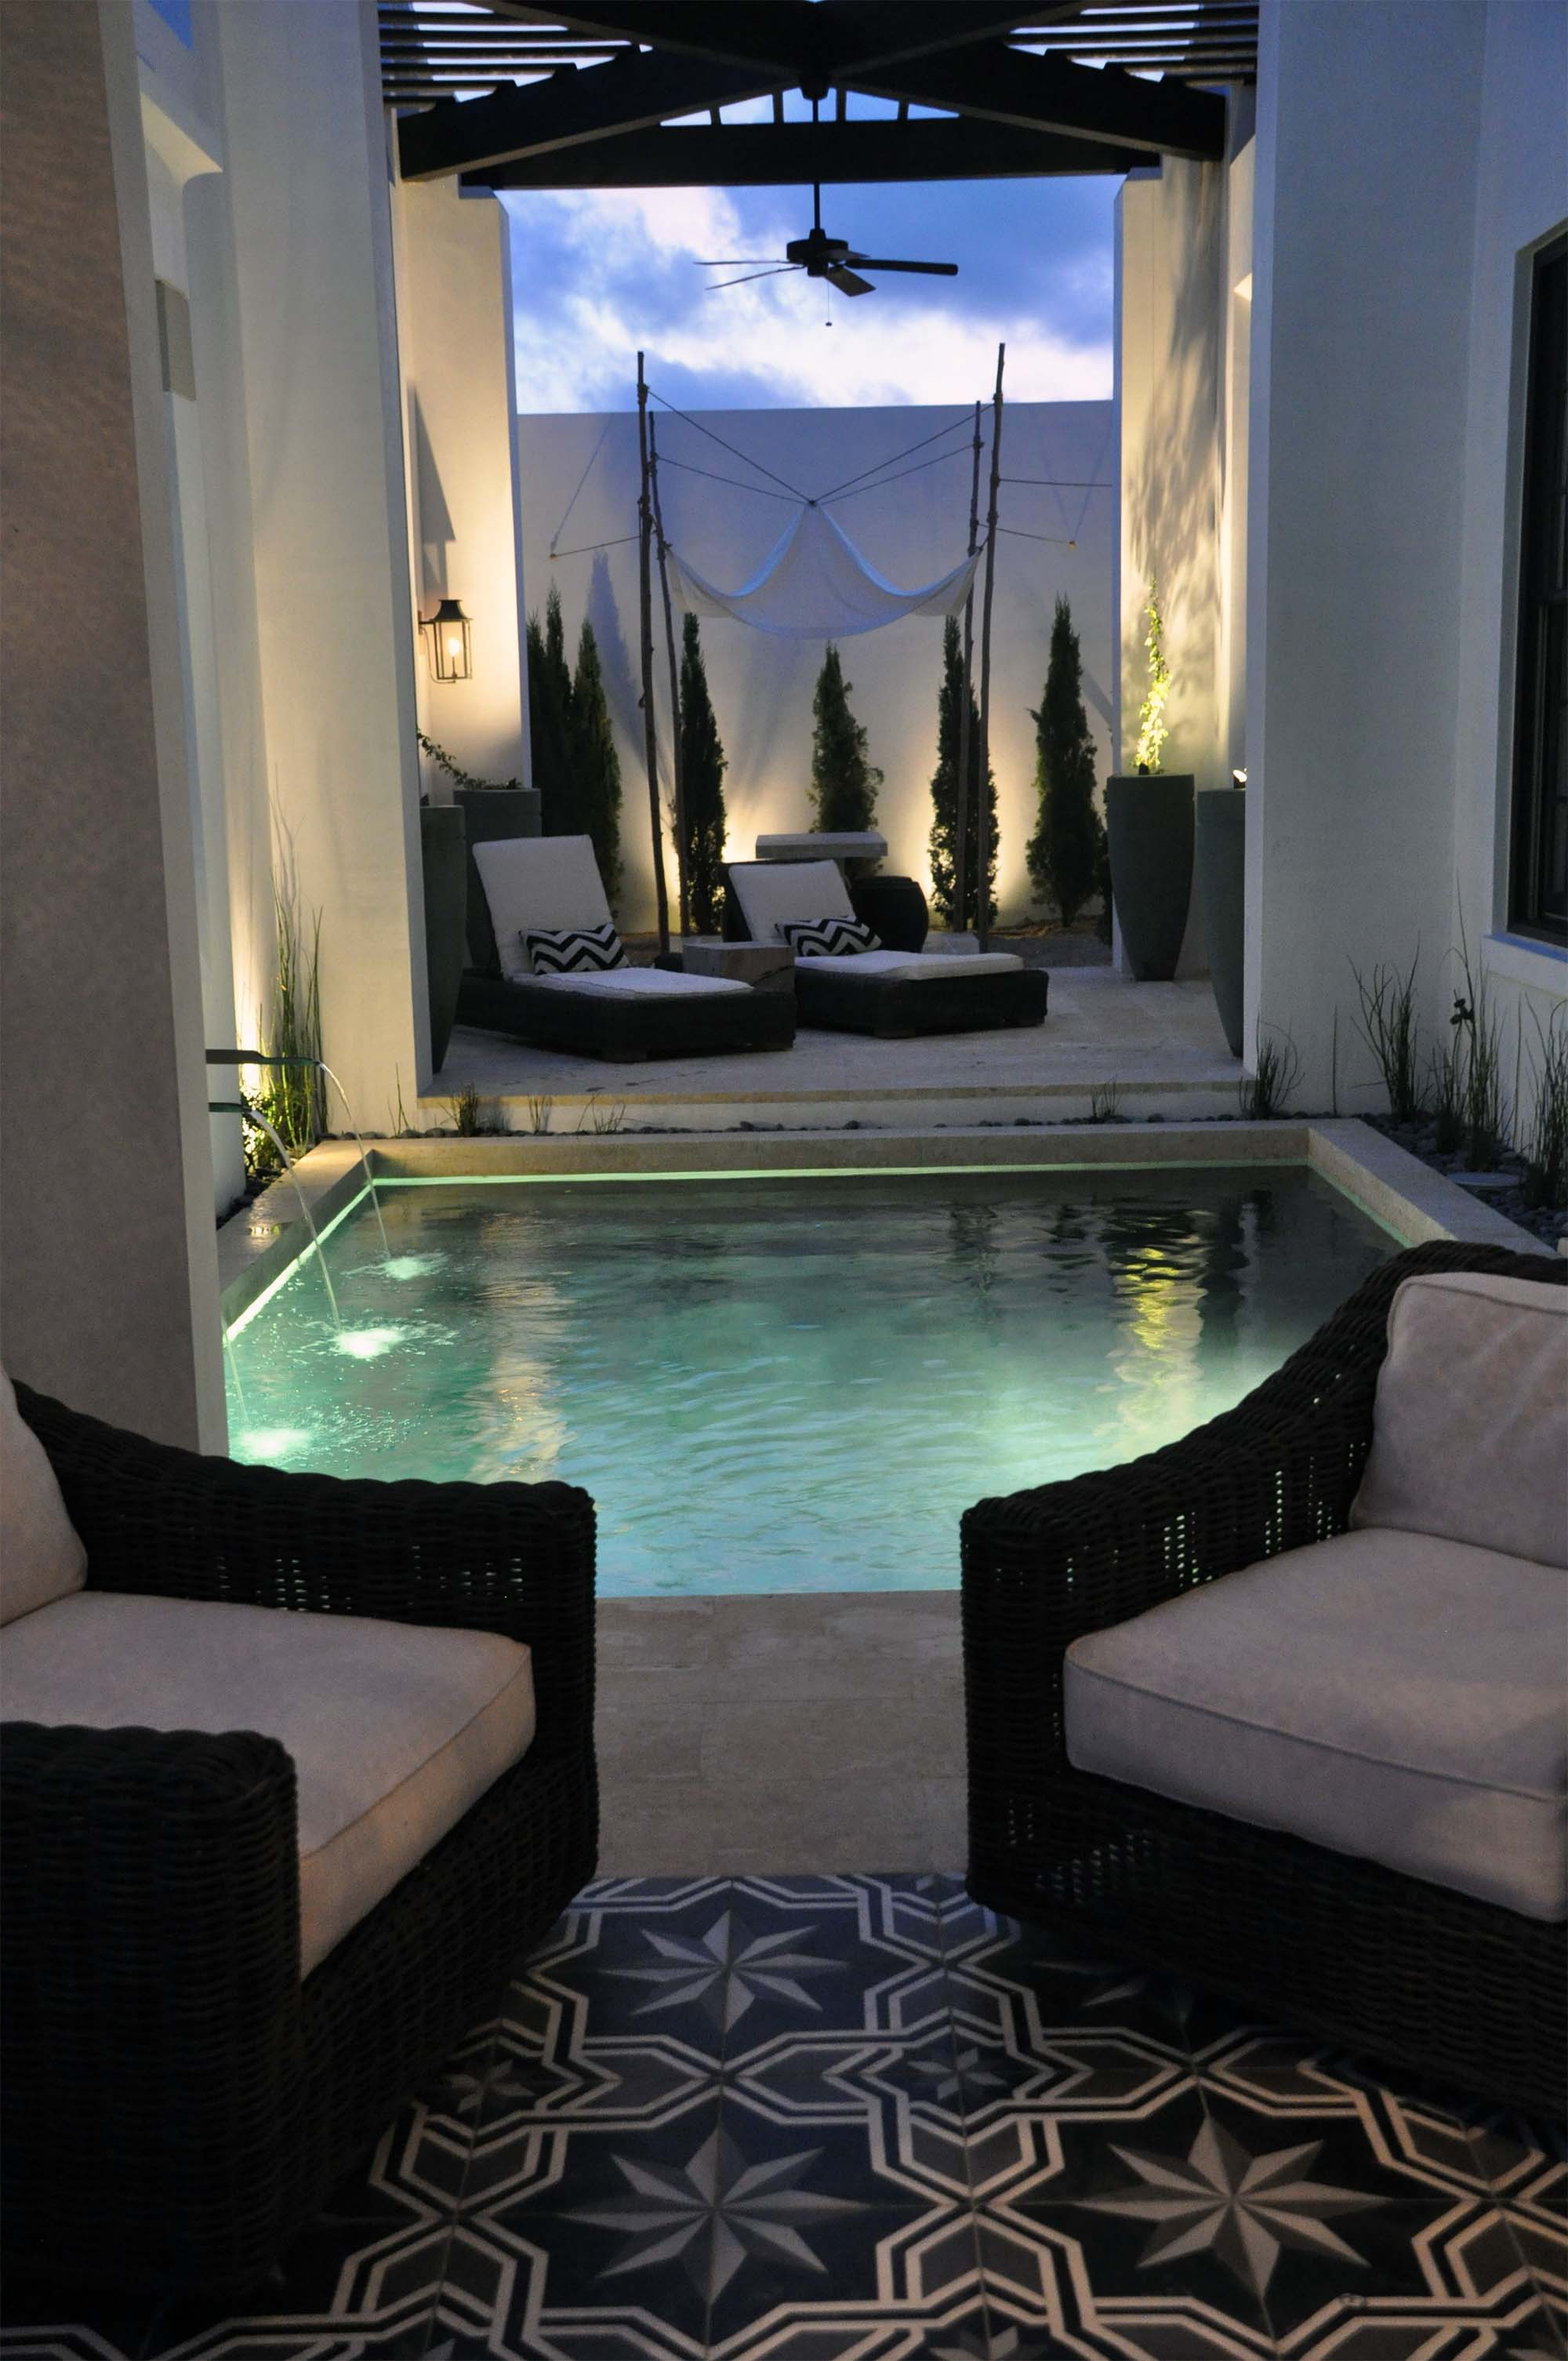 pool house interior stucco walls stone floor wicker furniture white cushions